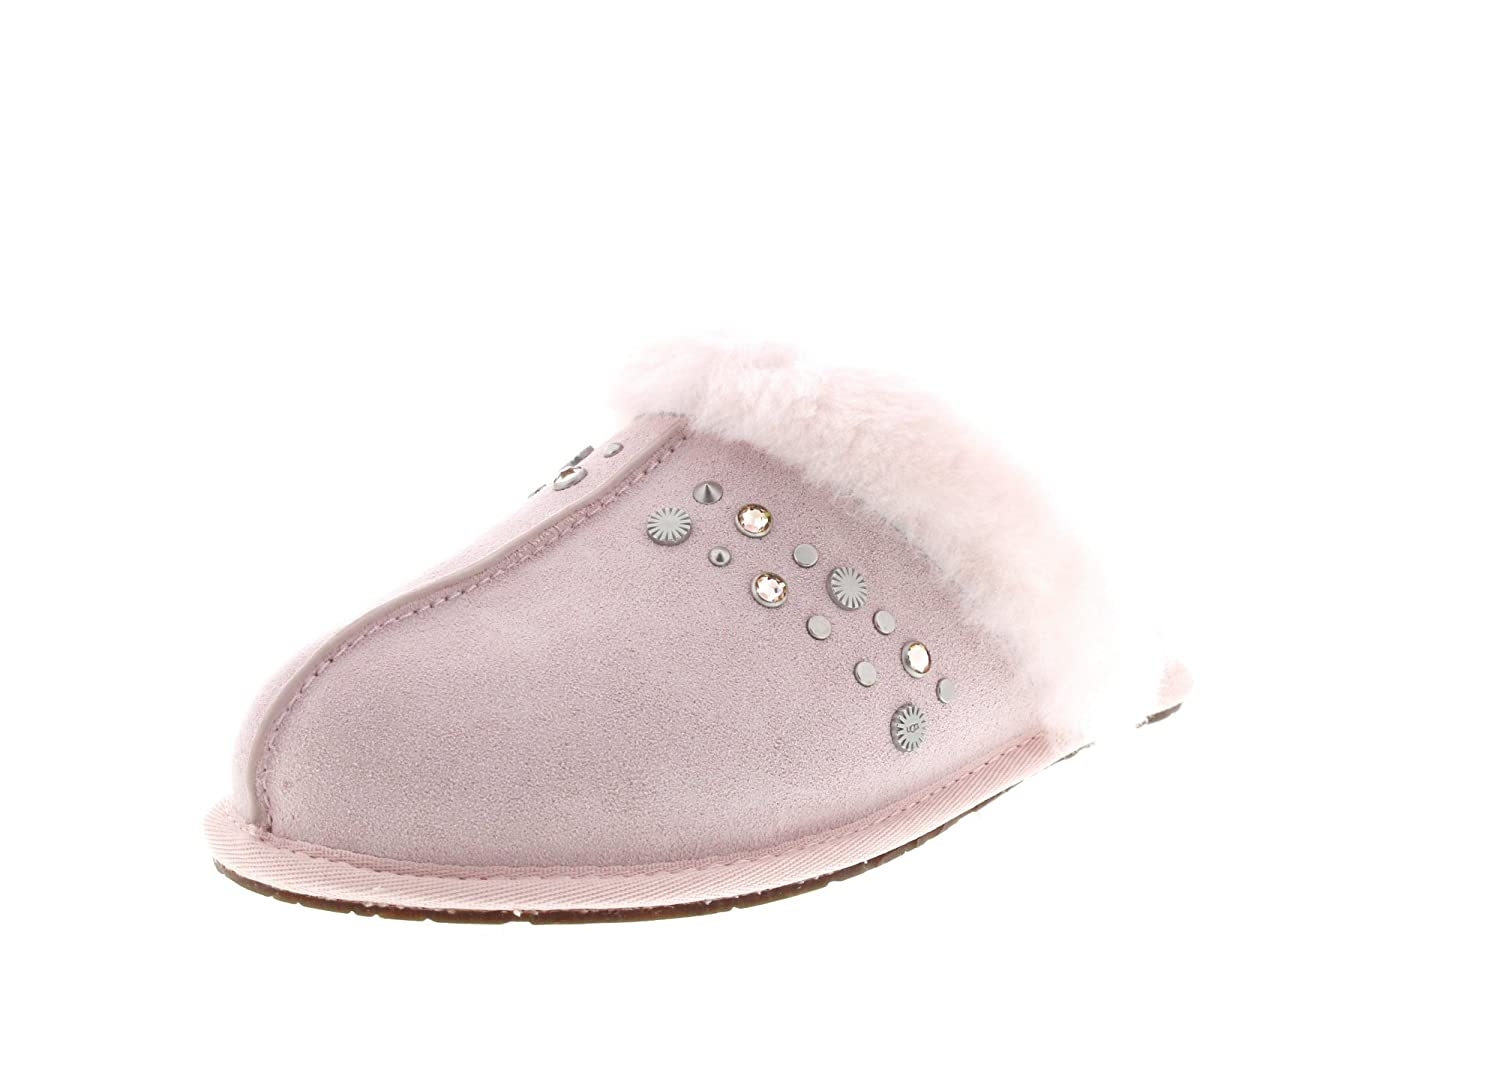 275b7323c8f UGG Scuffette II - Studded Bling - Pink - Slippers